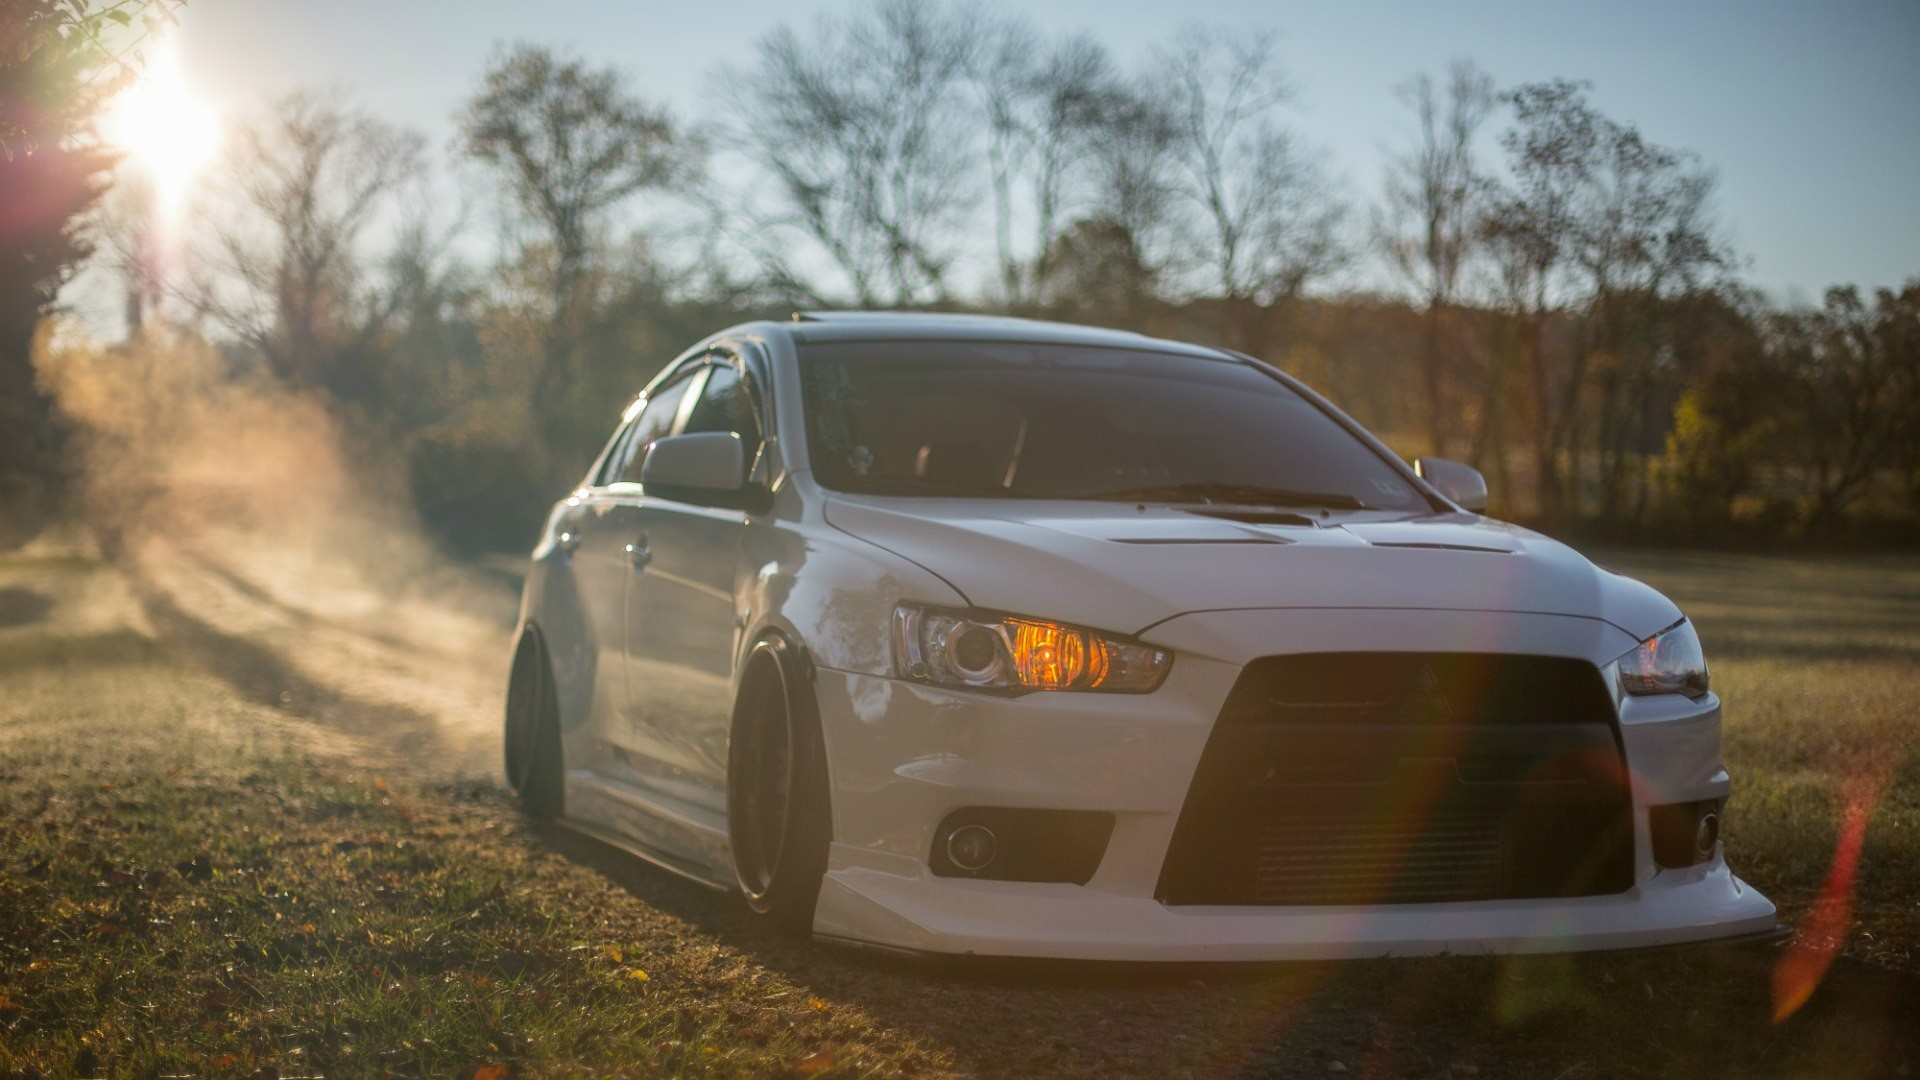 1920x1080 Mitsubishi Lancer Evolution X in the country wallpapers and images -  wallpapers, pictures, photos